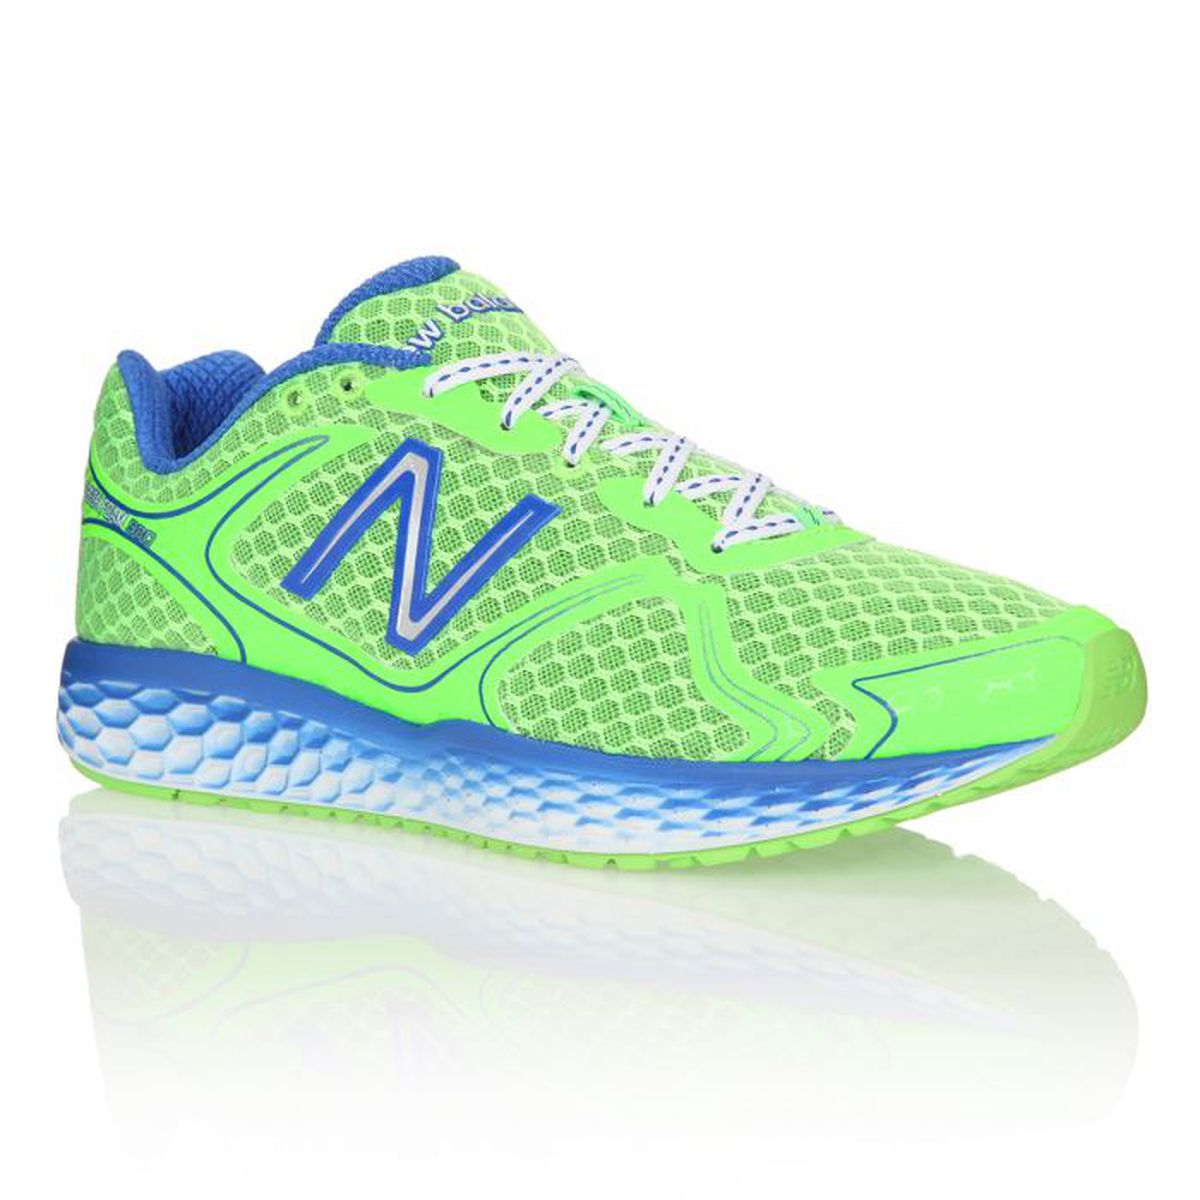 M980 Chaussures Pas D Homme Cher Running Prix New Balance V4 POnftAR